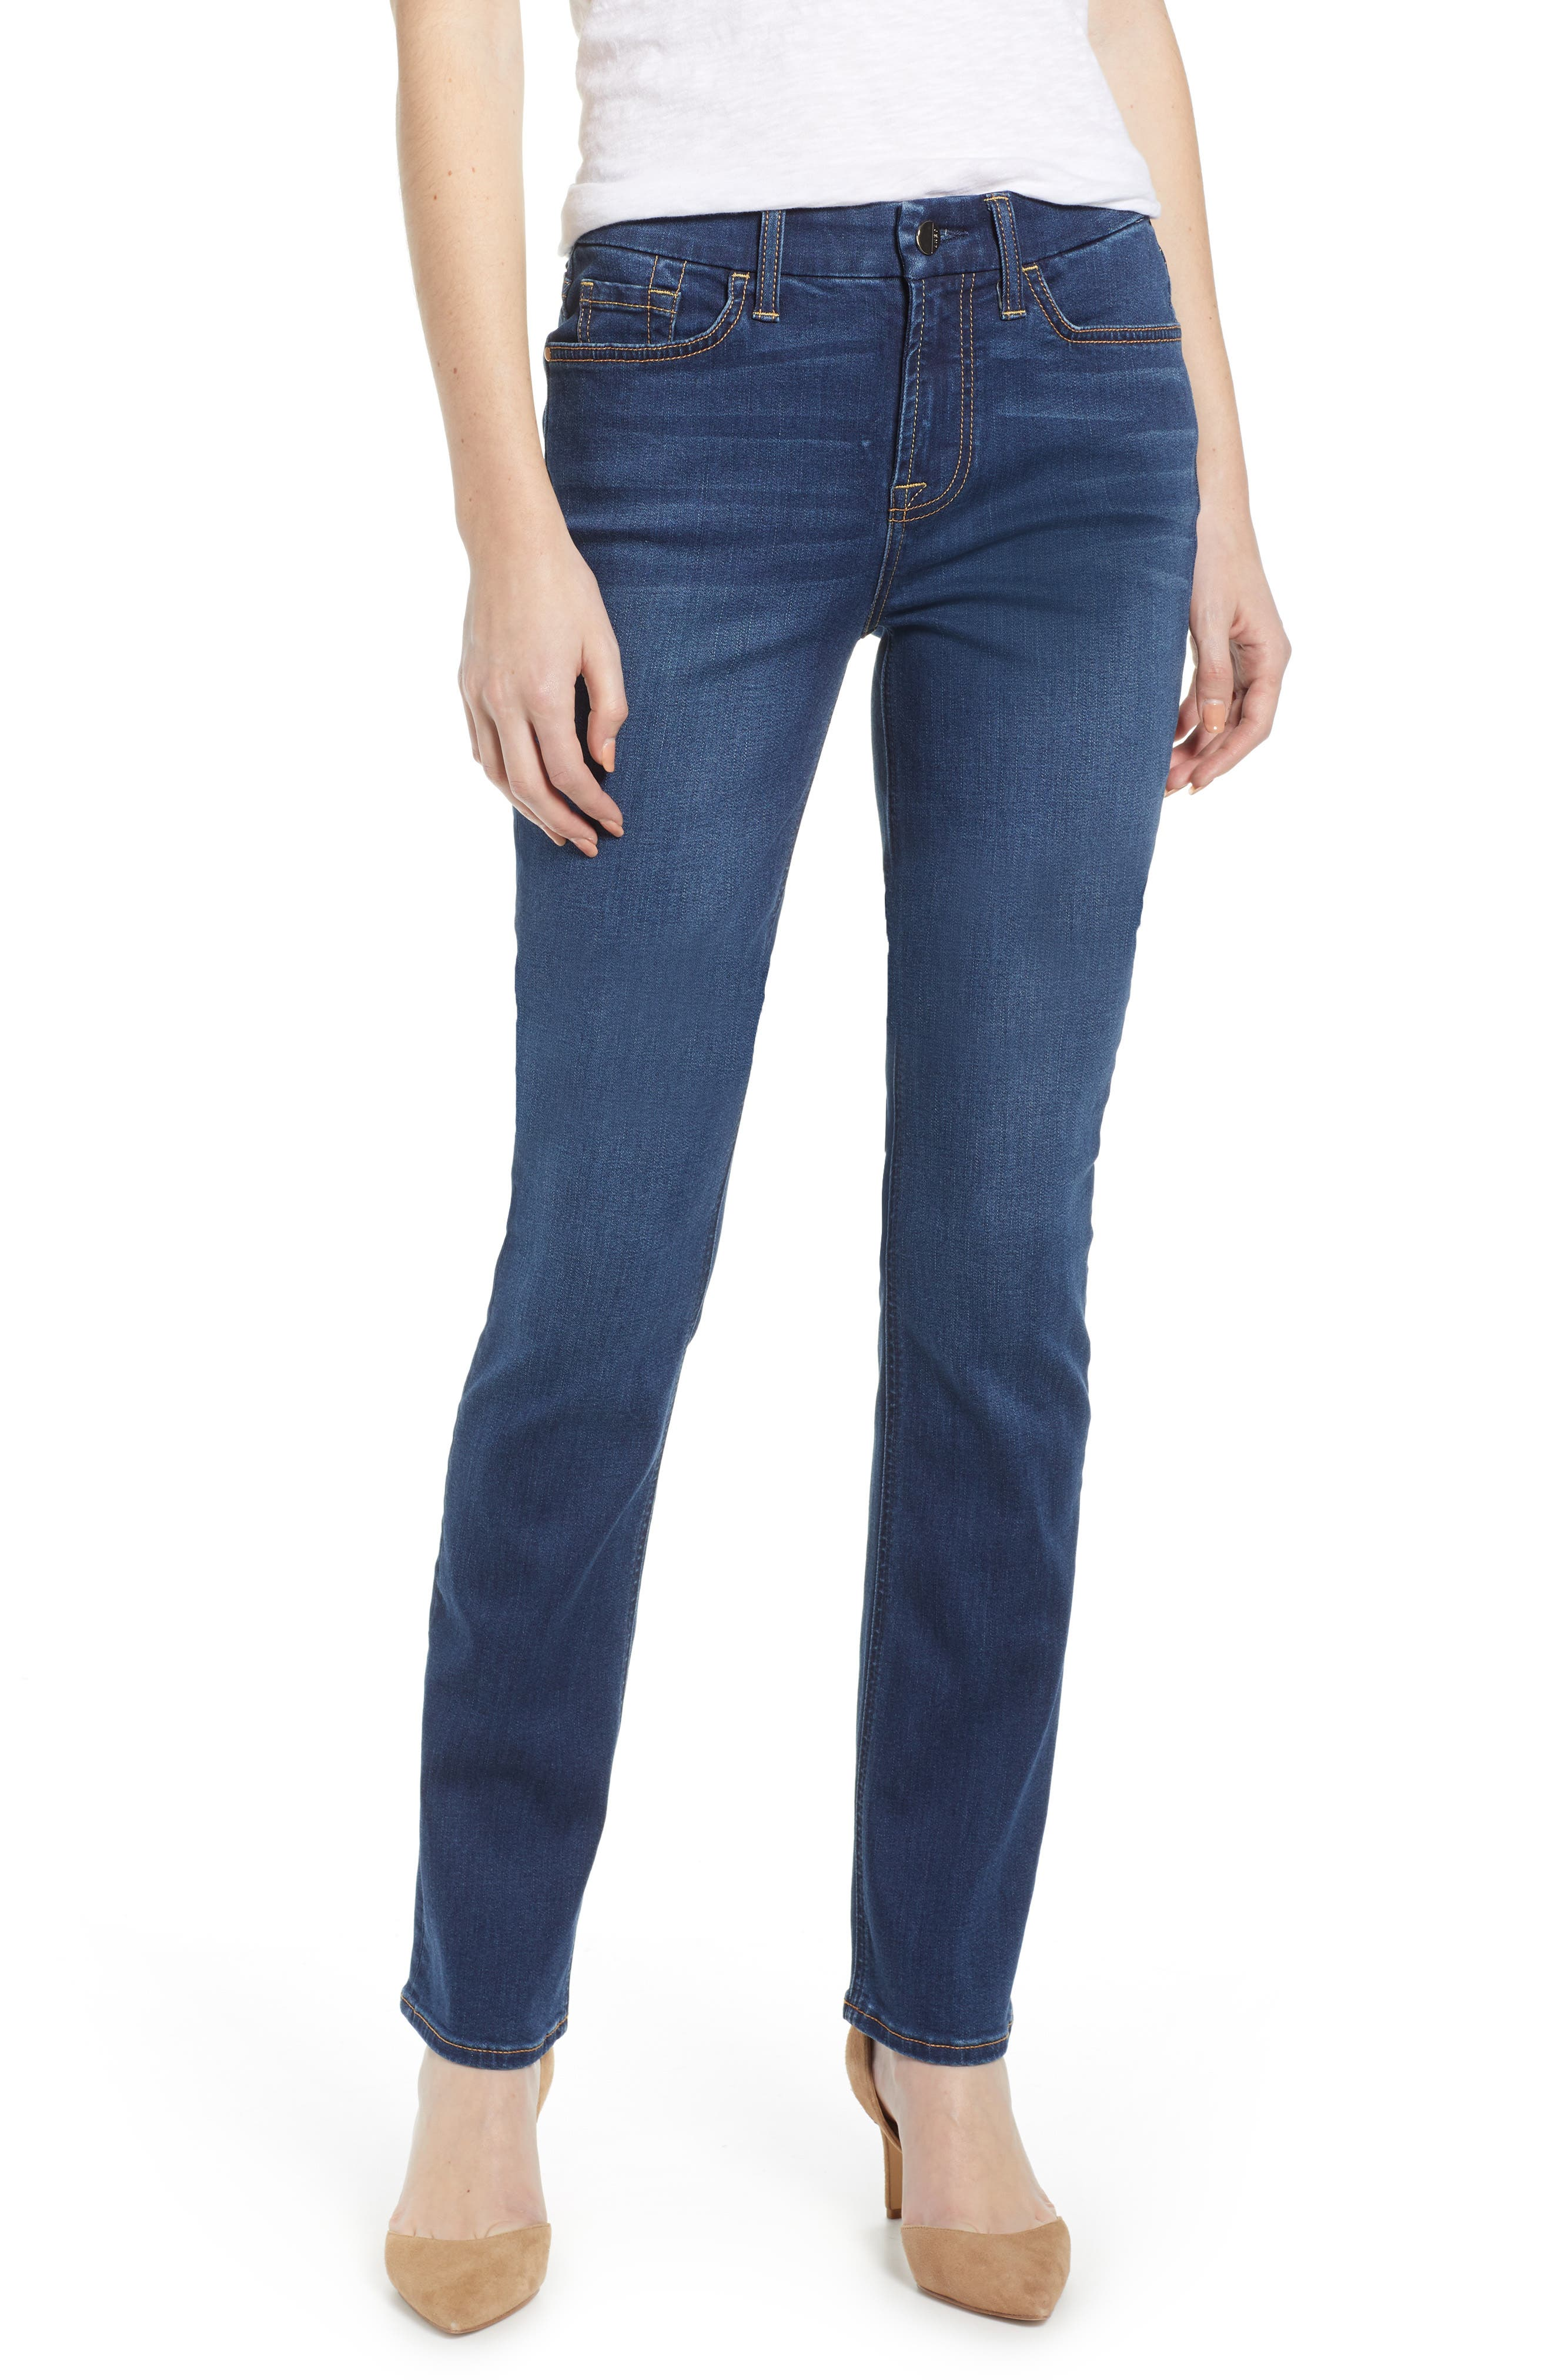 JEN7 BY 7 FOR ALL MANKIND, Slim Straight Leg Jeans, Main thumbnail 1, color, 404